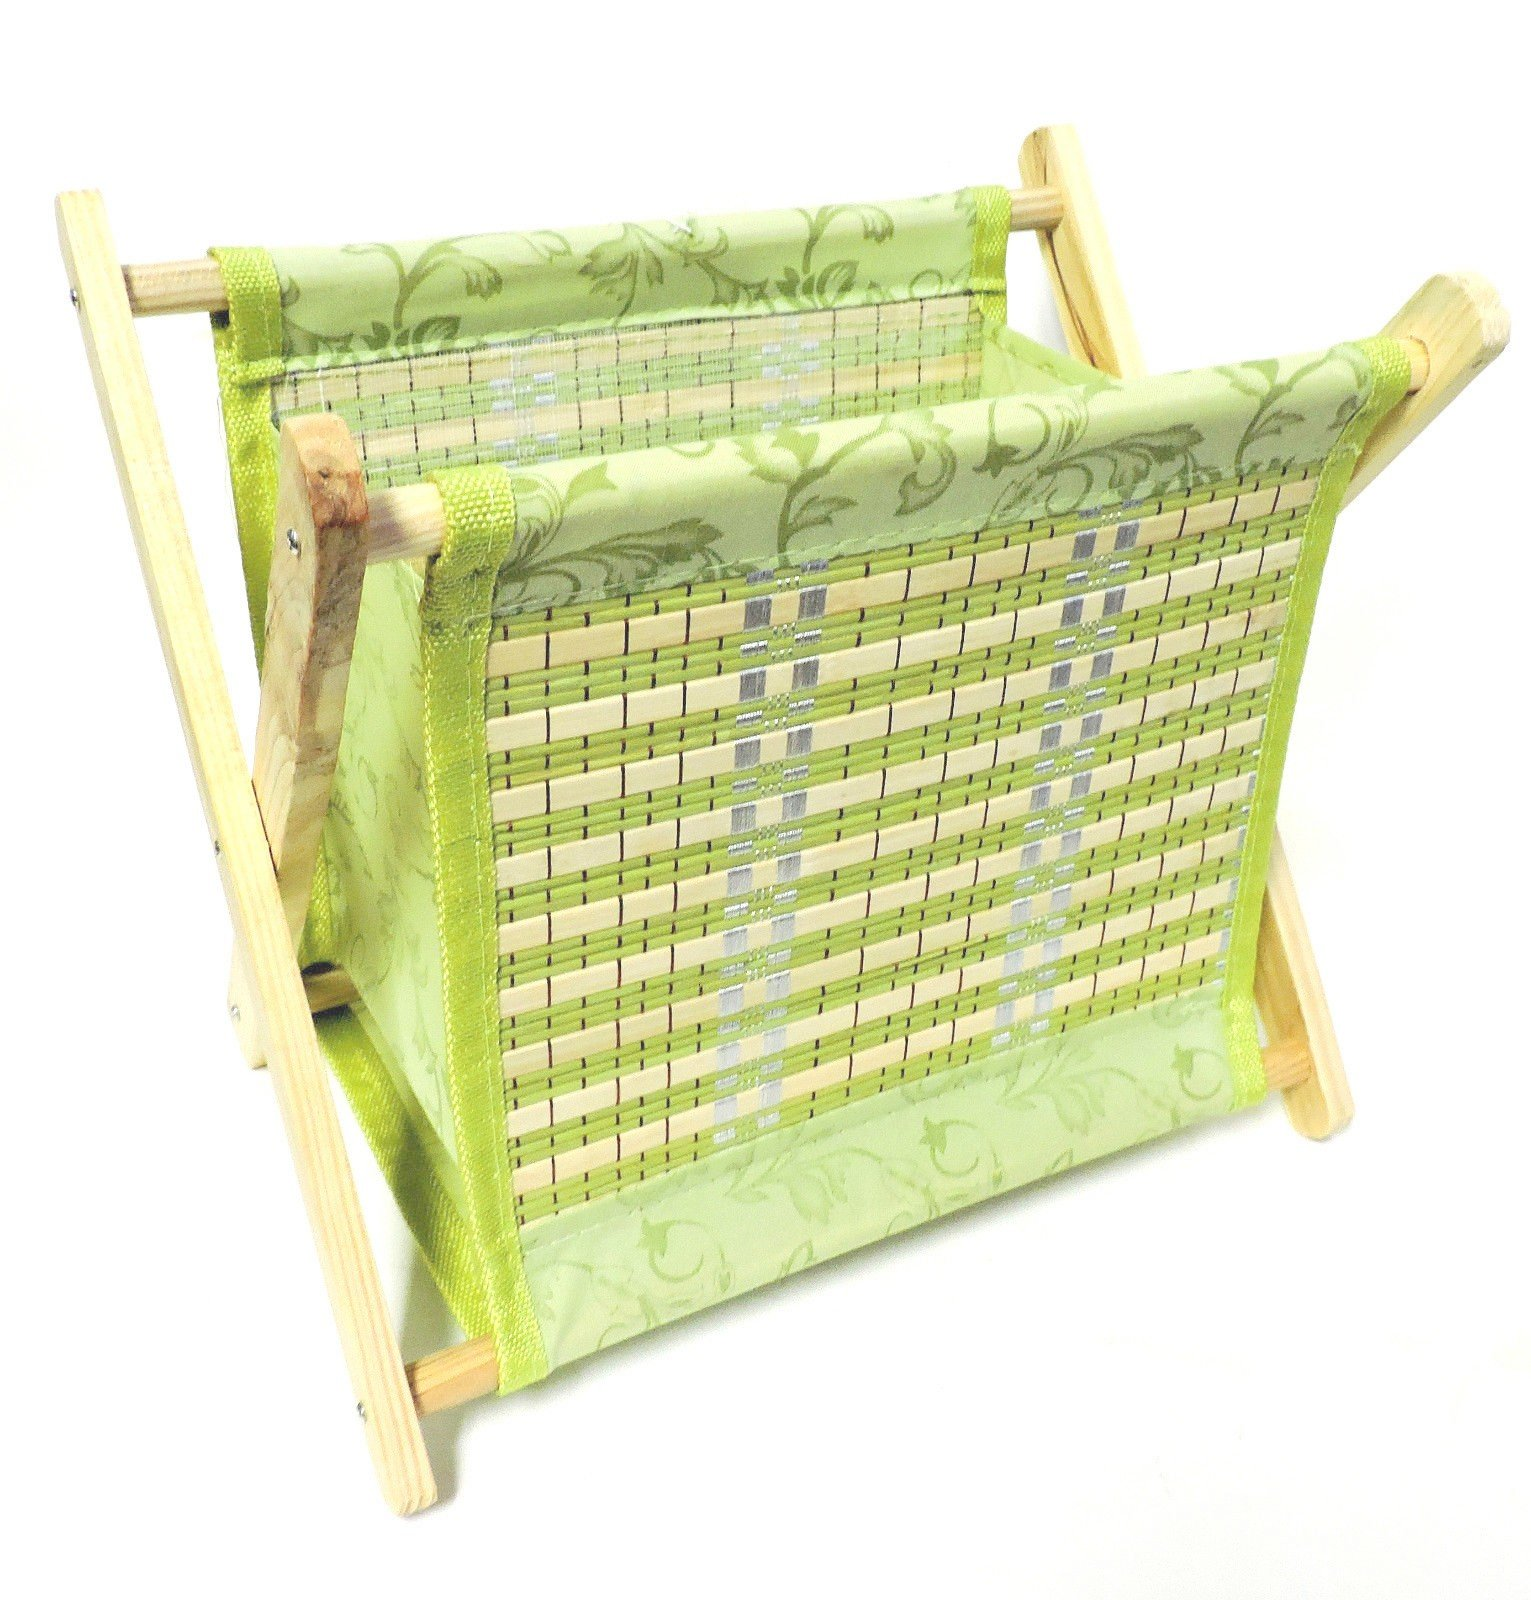 DINY Home & Style Standing Magazine Rack Wood with Bamboo Design Folding for Easy Storage